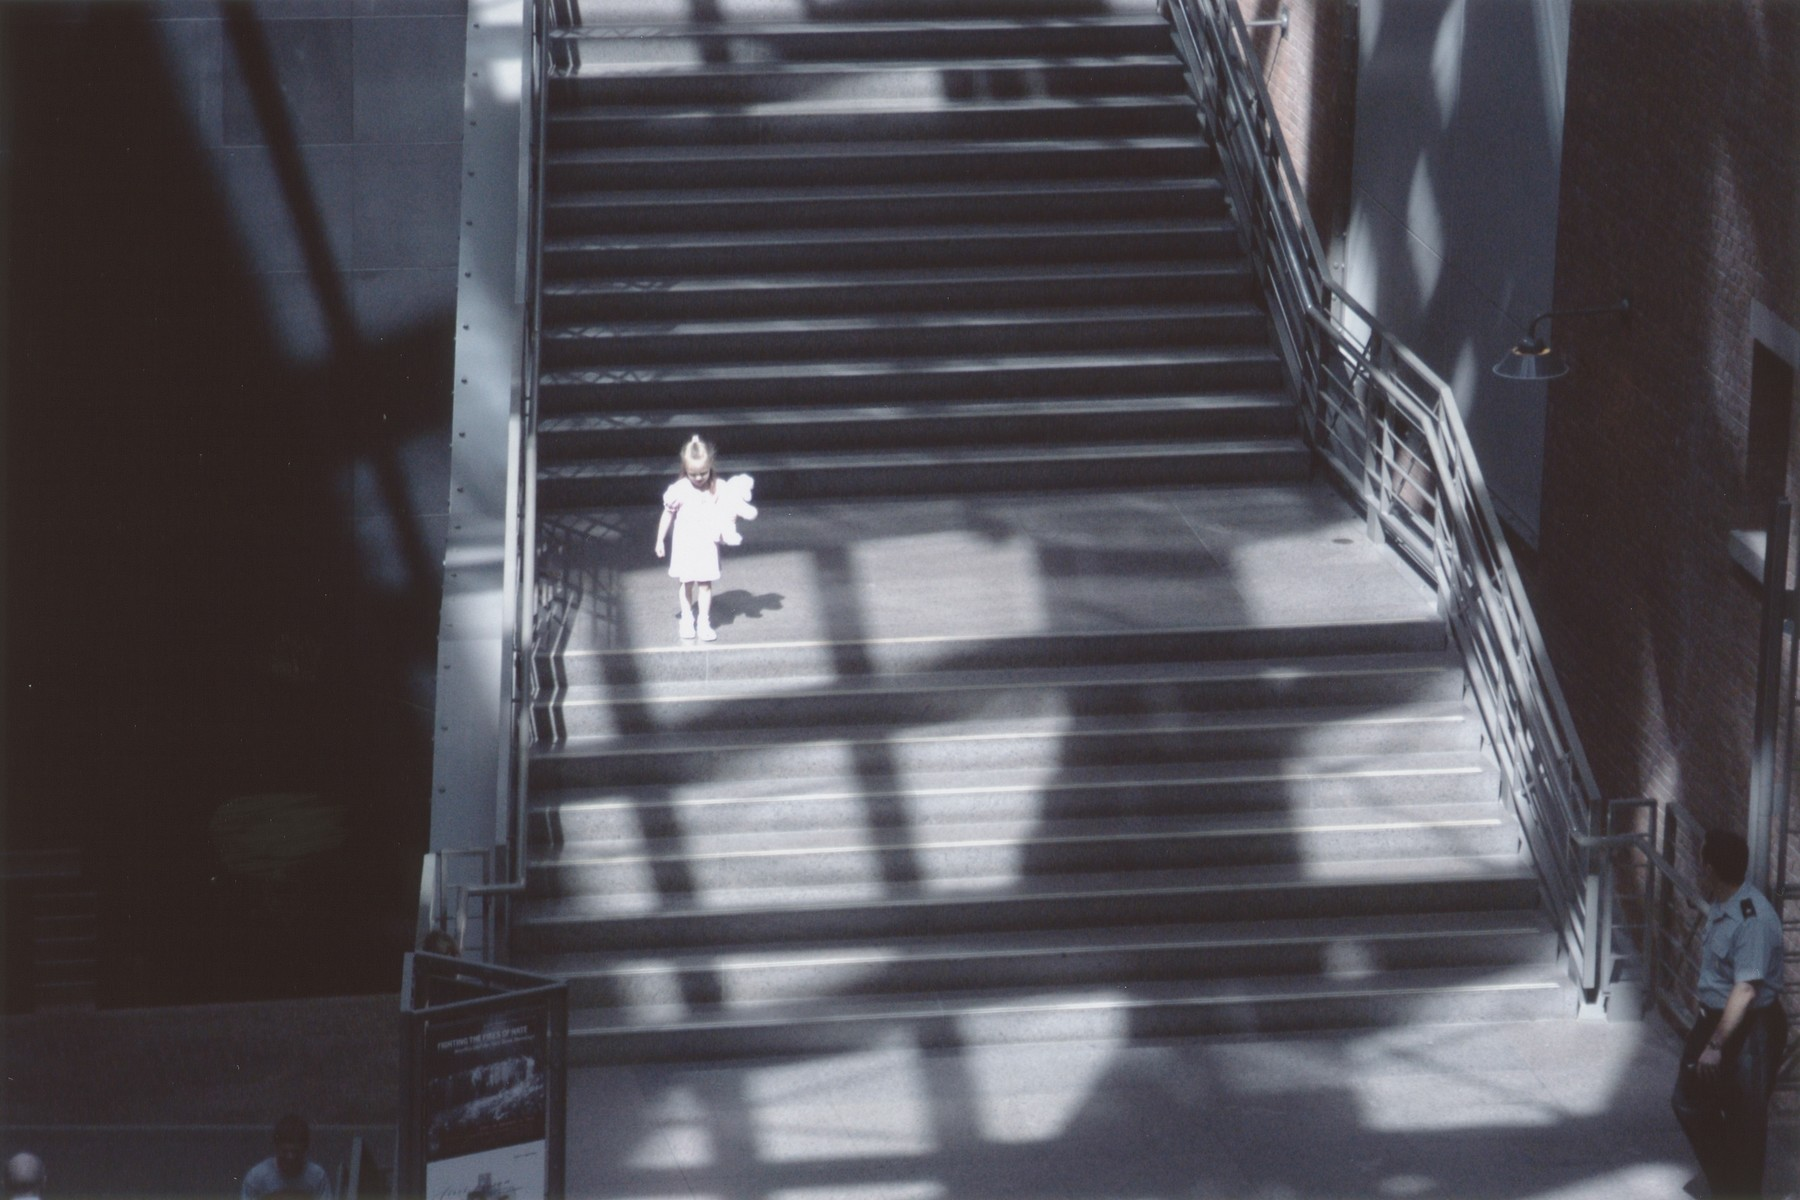 A little girl poses with a stuffed animal on the staircase in the Hall of Witness at the U.S. Holocaust Memorial Museum.